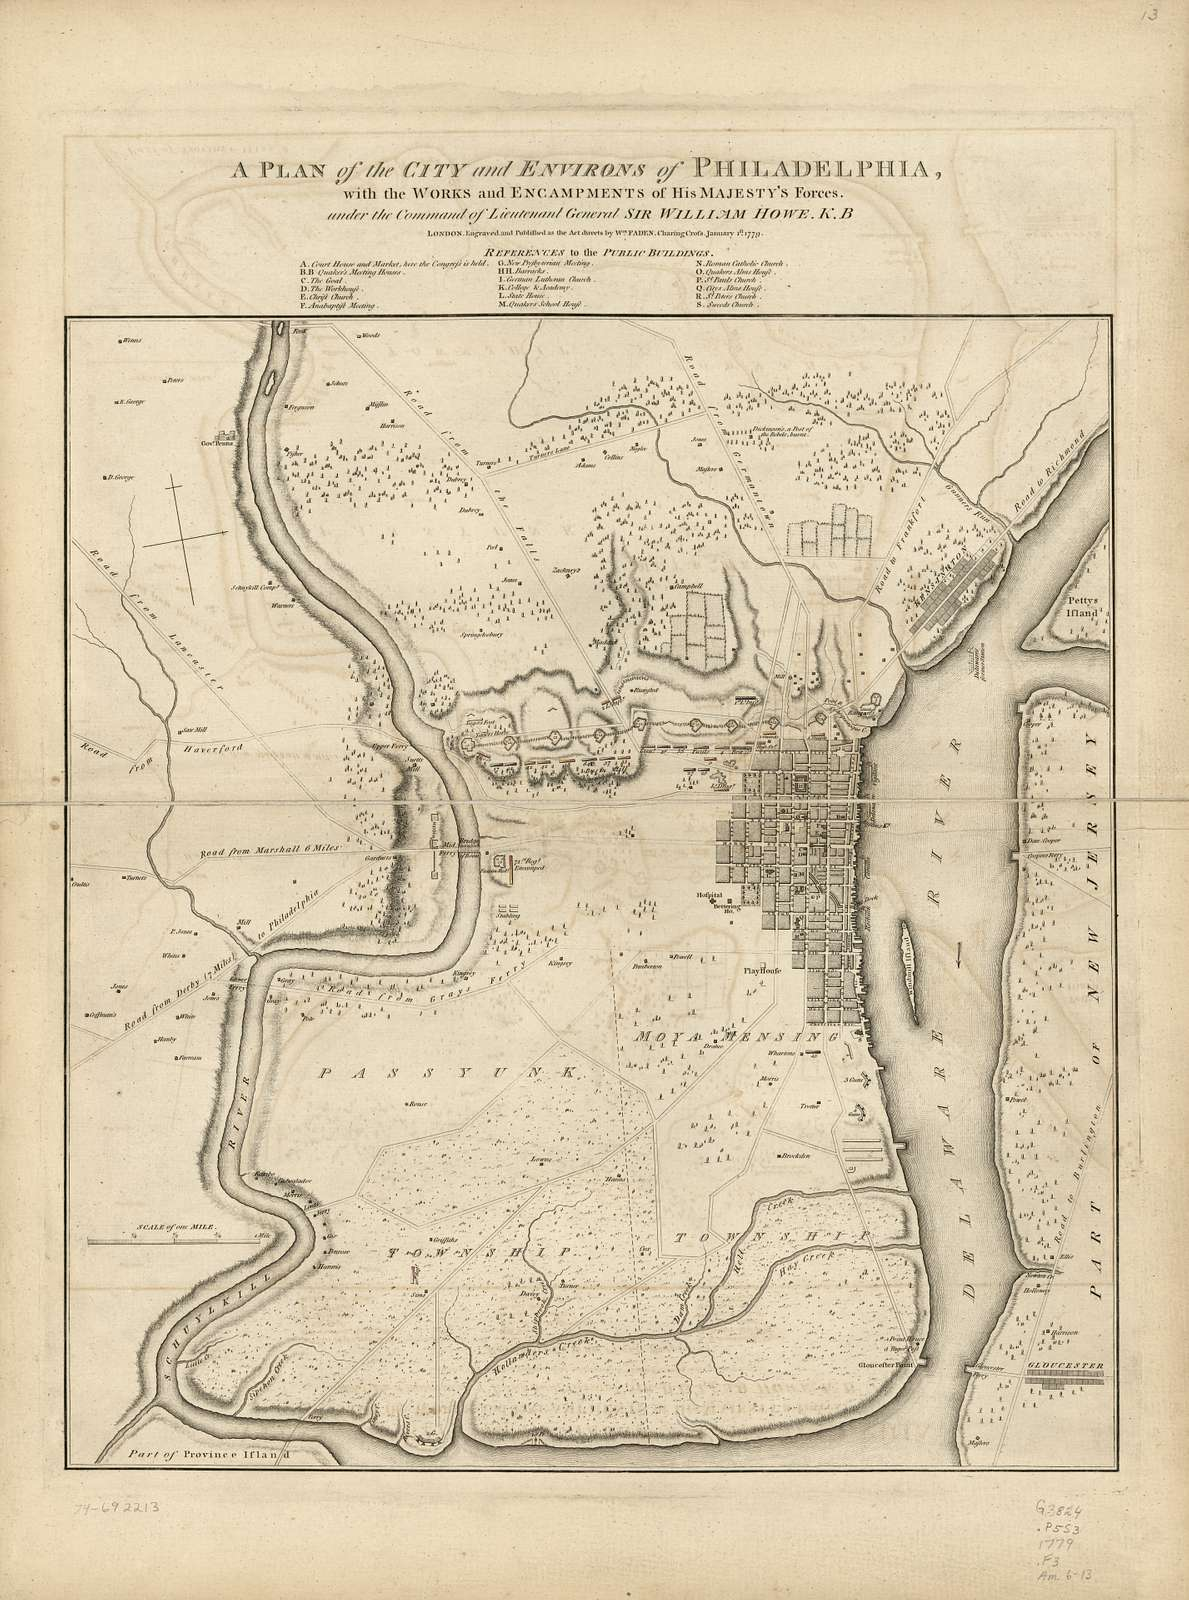 A plan of the city and environs of Philadelphia : with the works and encampments of His Majesty's forces under the command of Lieutenant General Sir William Howe, K.B. /